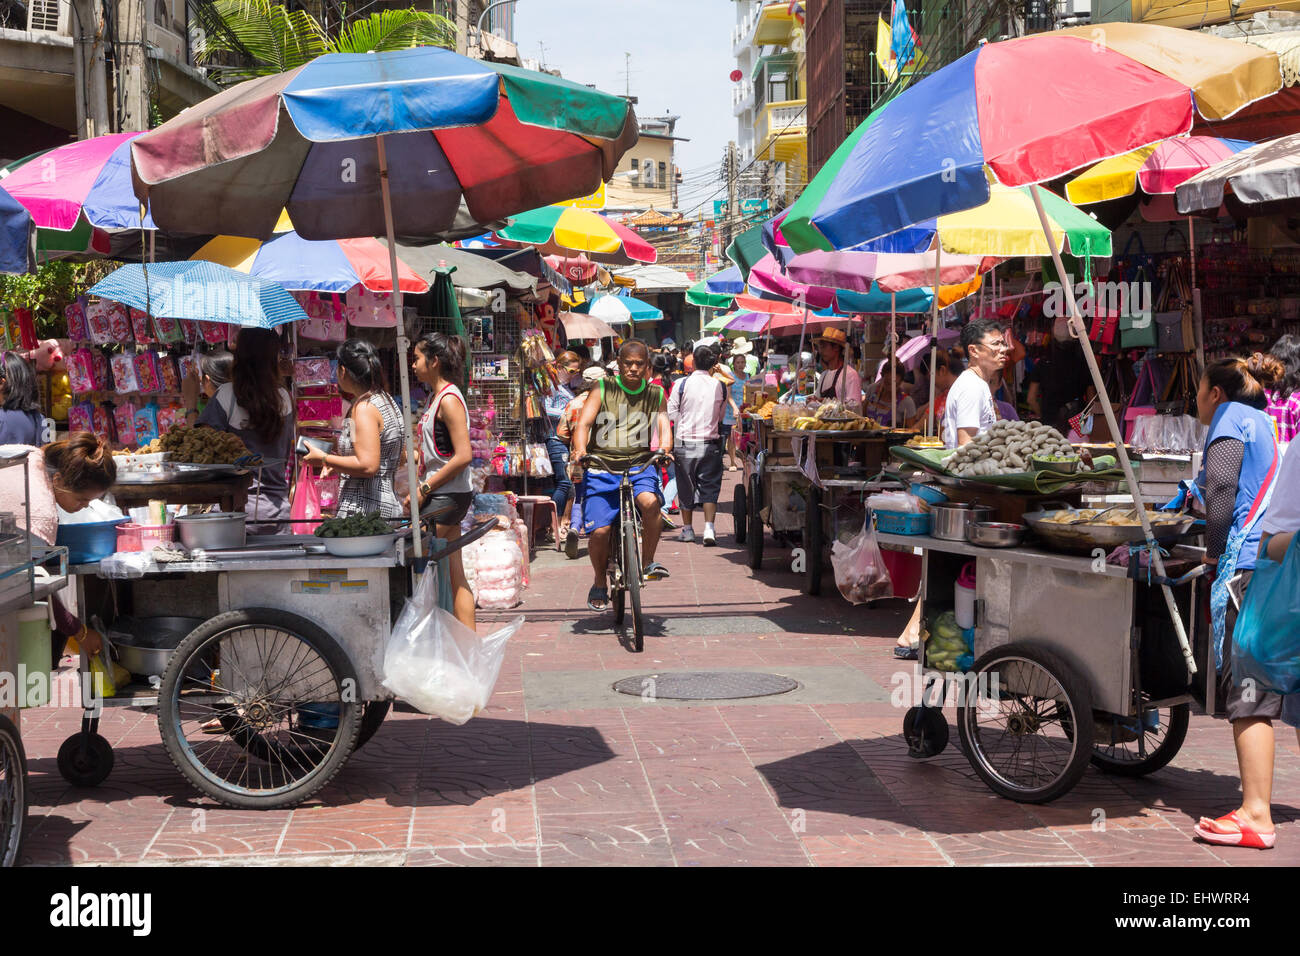 Busy street with vendors stalls in Chinatown, Bangkok, Thailand - Stock Image